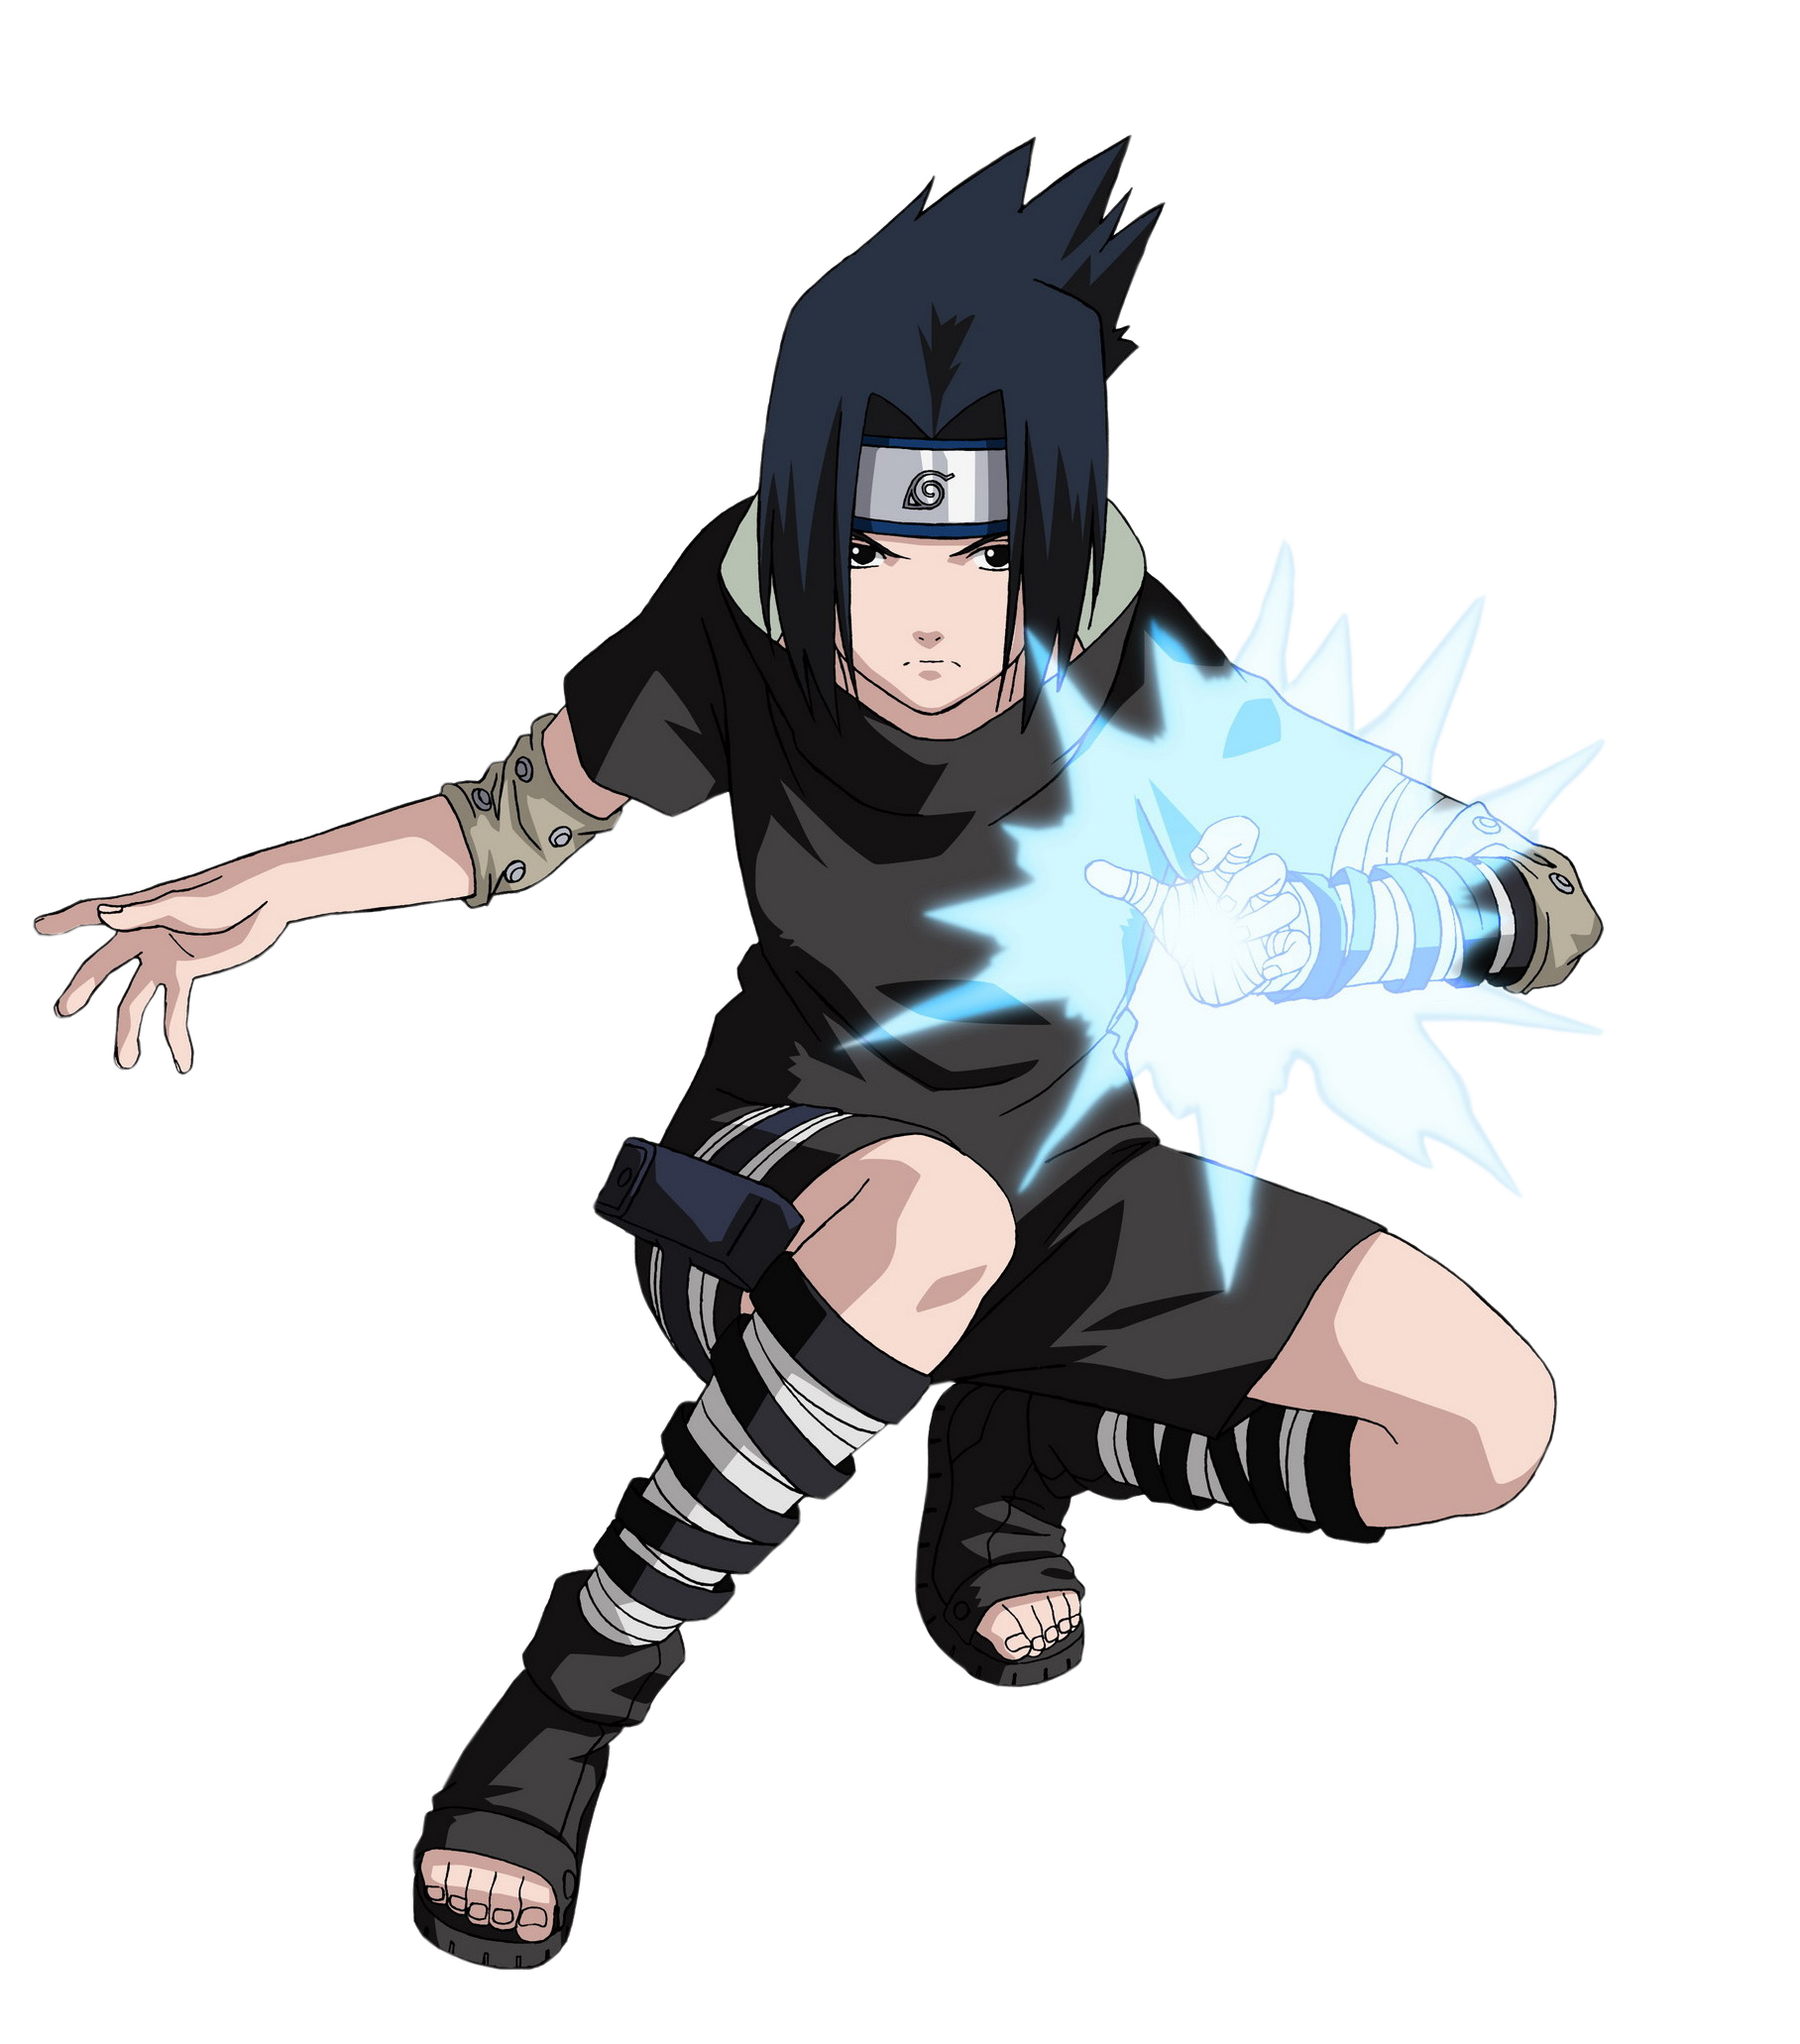 Fotos do sasuke clipart images gallery for free download.